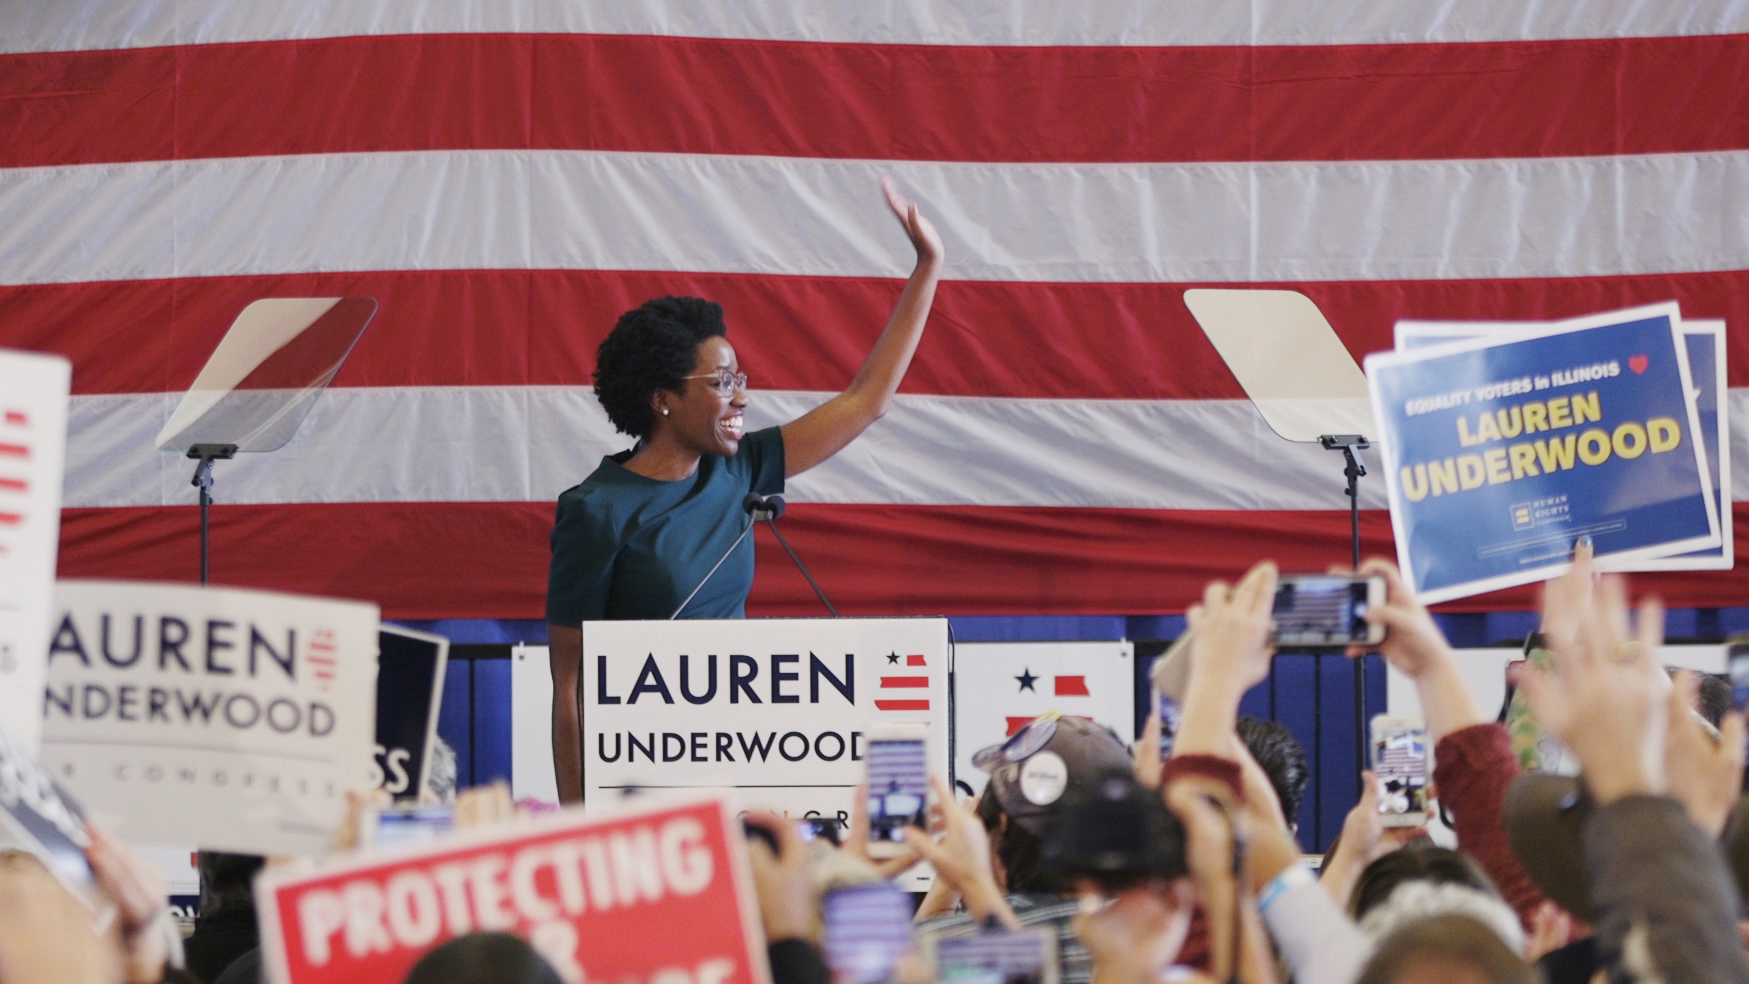 Lauren Underwood at an early vote rally in St. Charles, Illinois